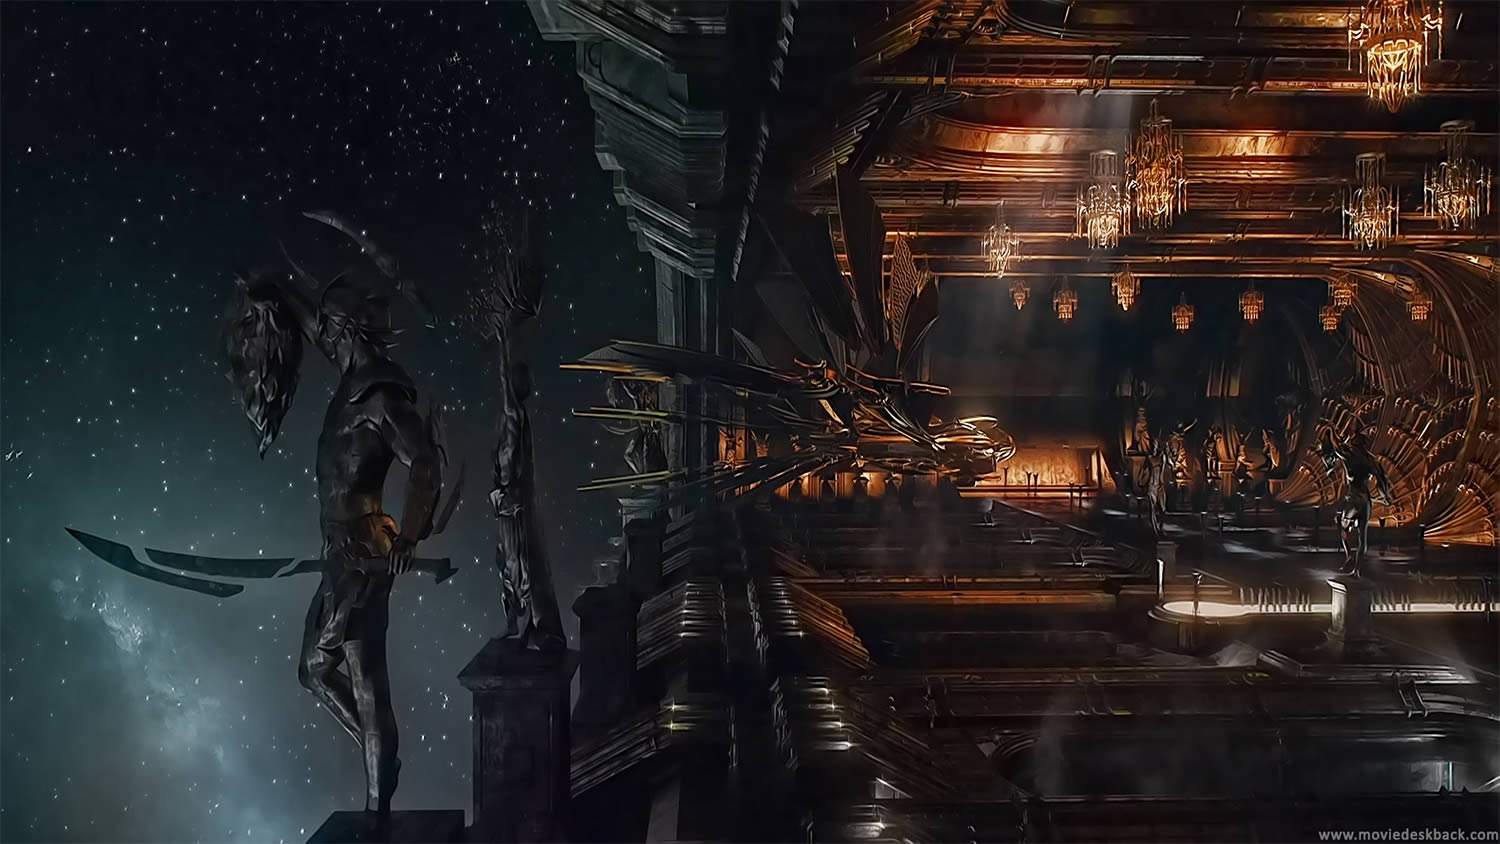 Jupiter Ascending, science fiction movie. Dark scene in space